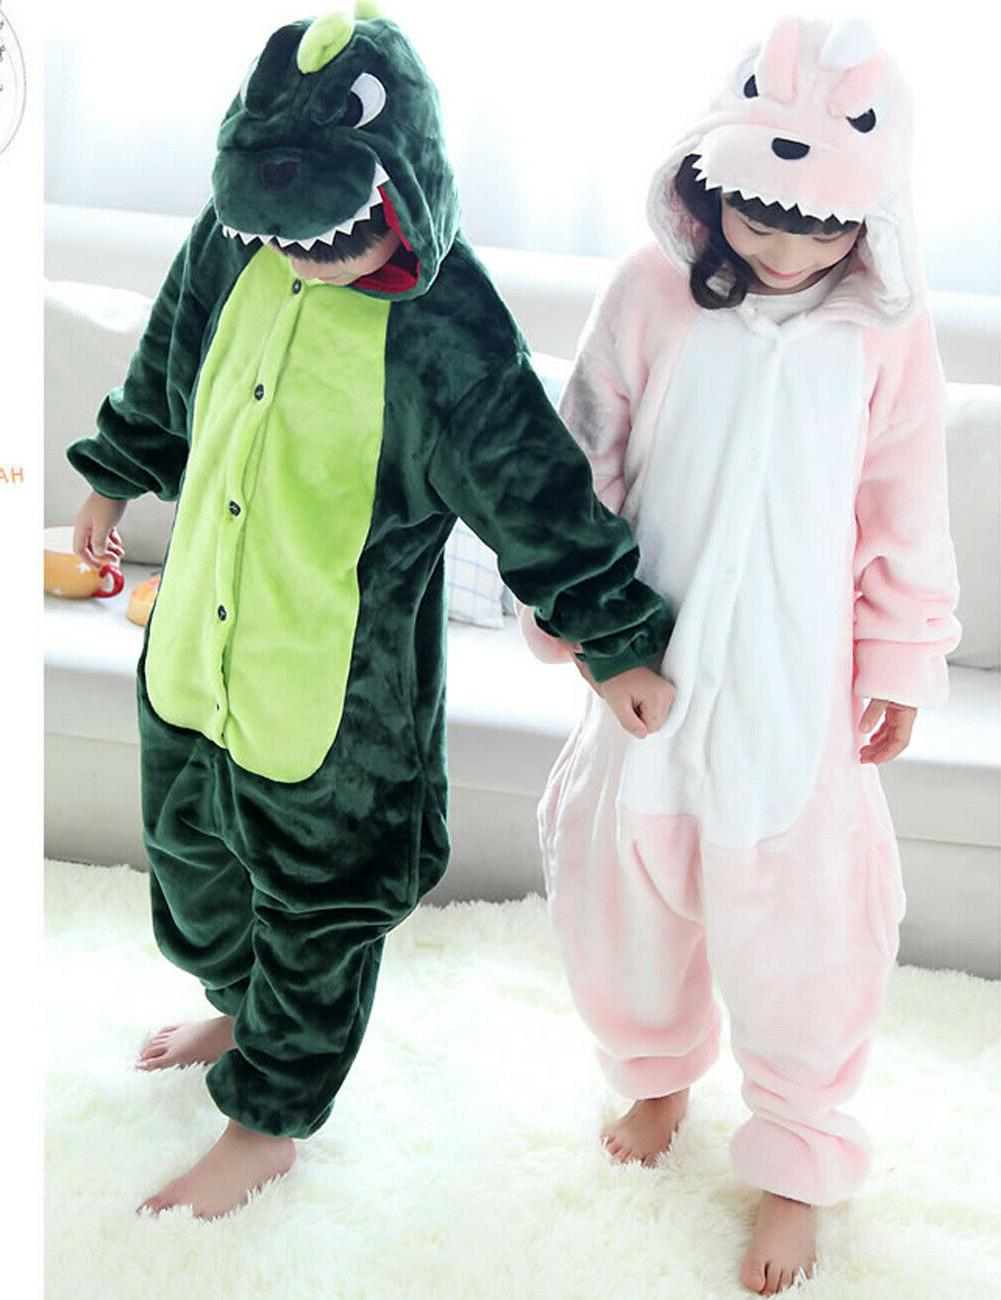 duraplast kids dragon costume halloween hooded jumpsuit